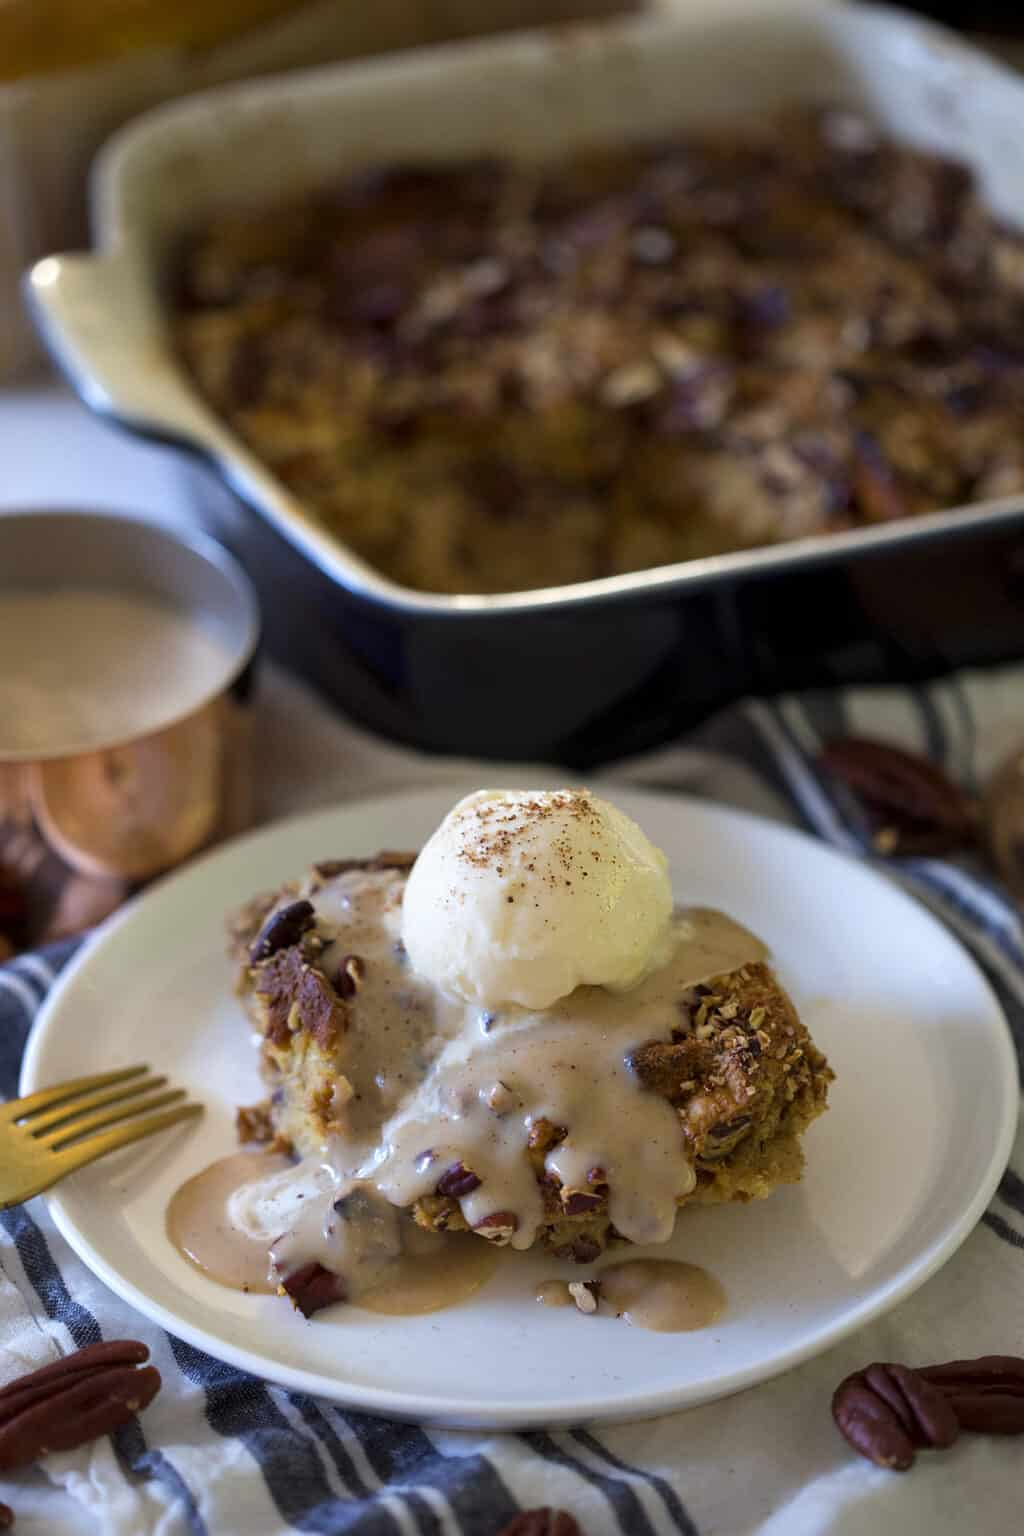 A photo of a piece of bread pudding on a plate with sauce and a scoop of ice cream on top.